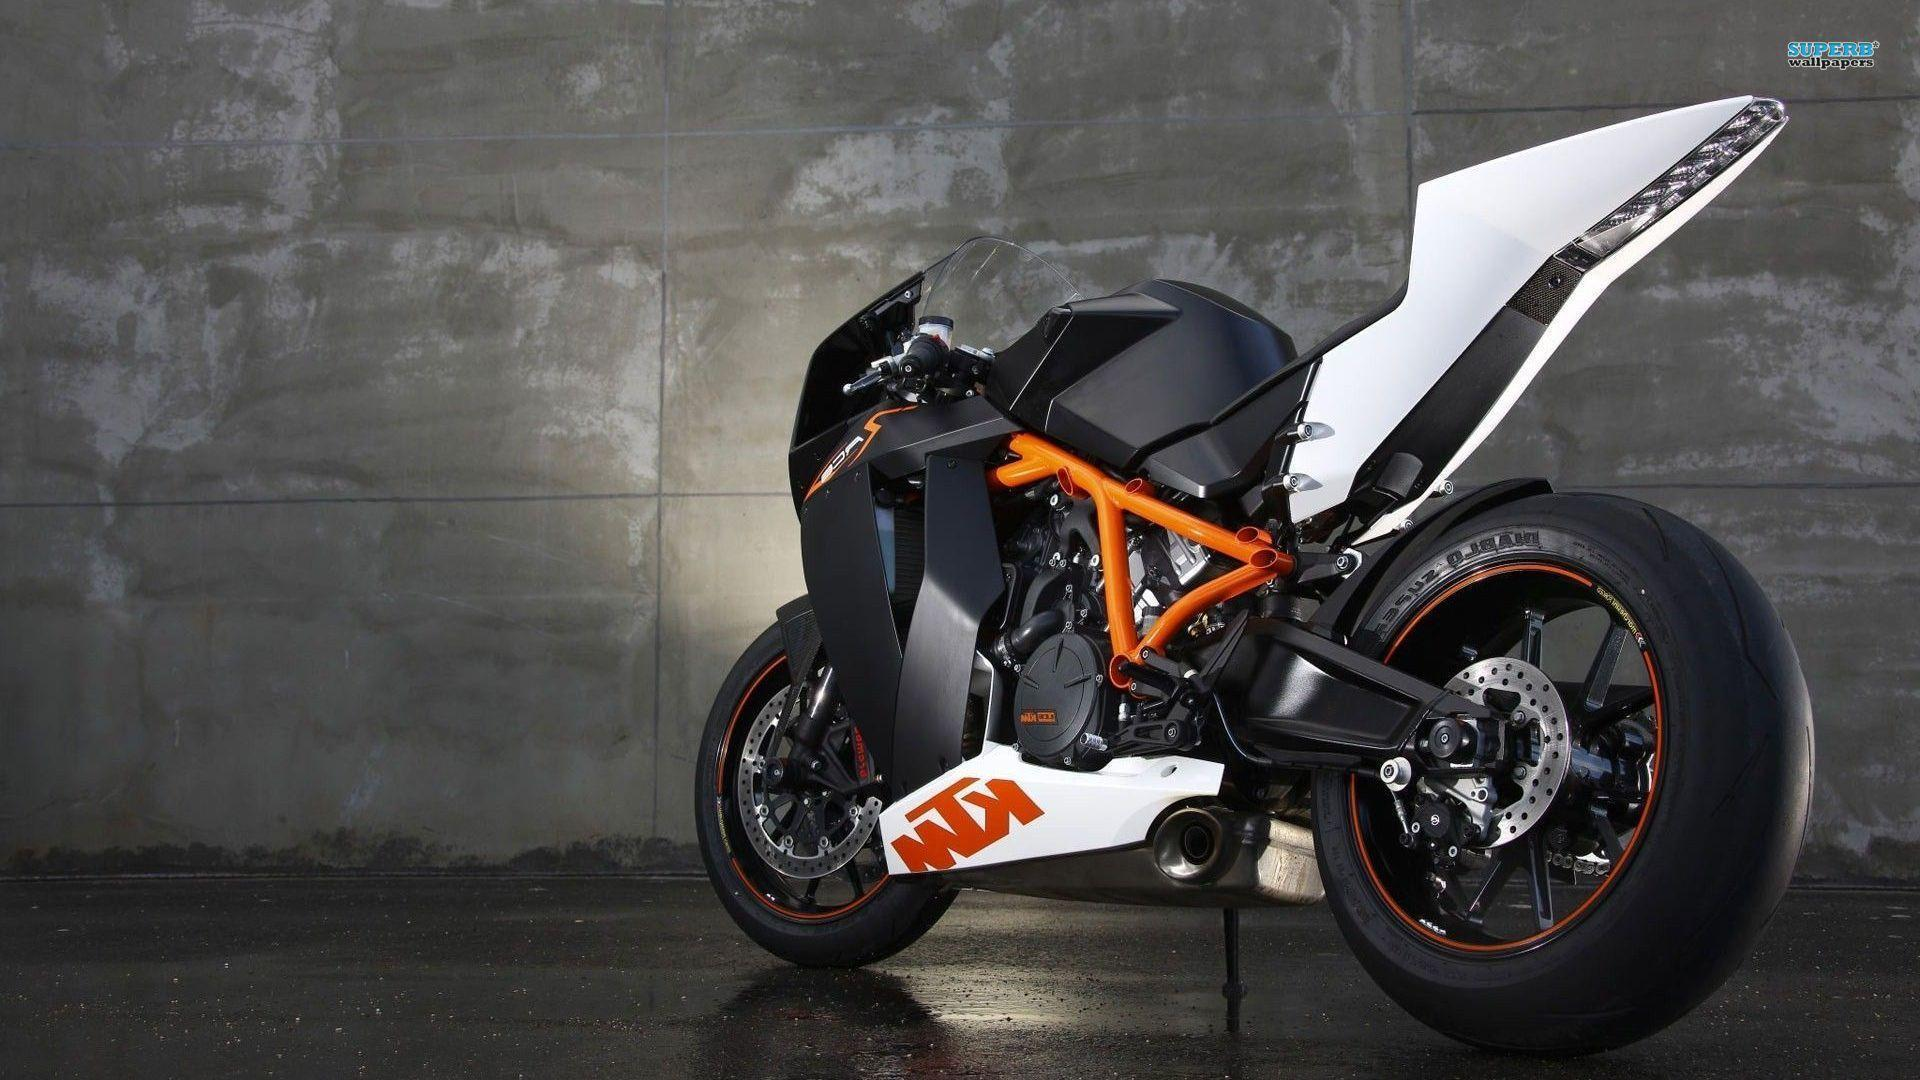 KTM 1190 RC8 wallpaper - Motorcycle wallpapers - #